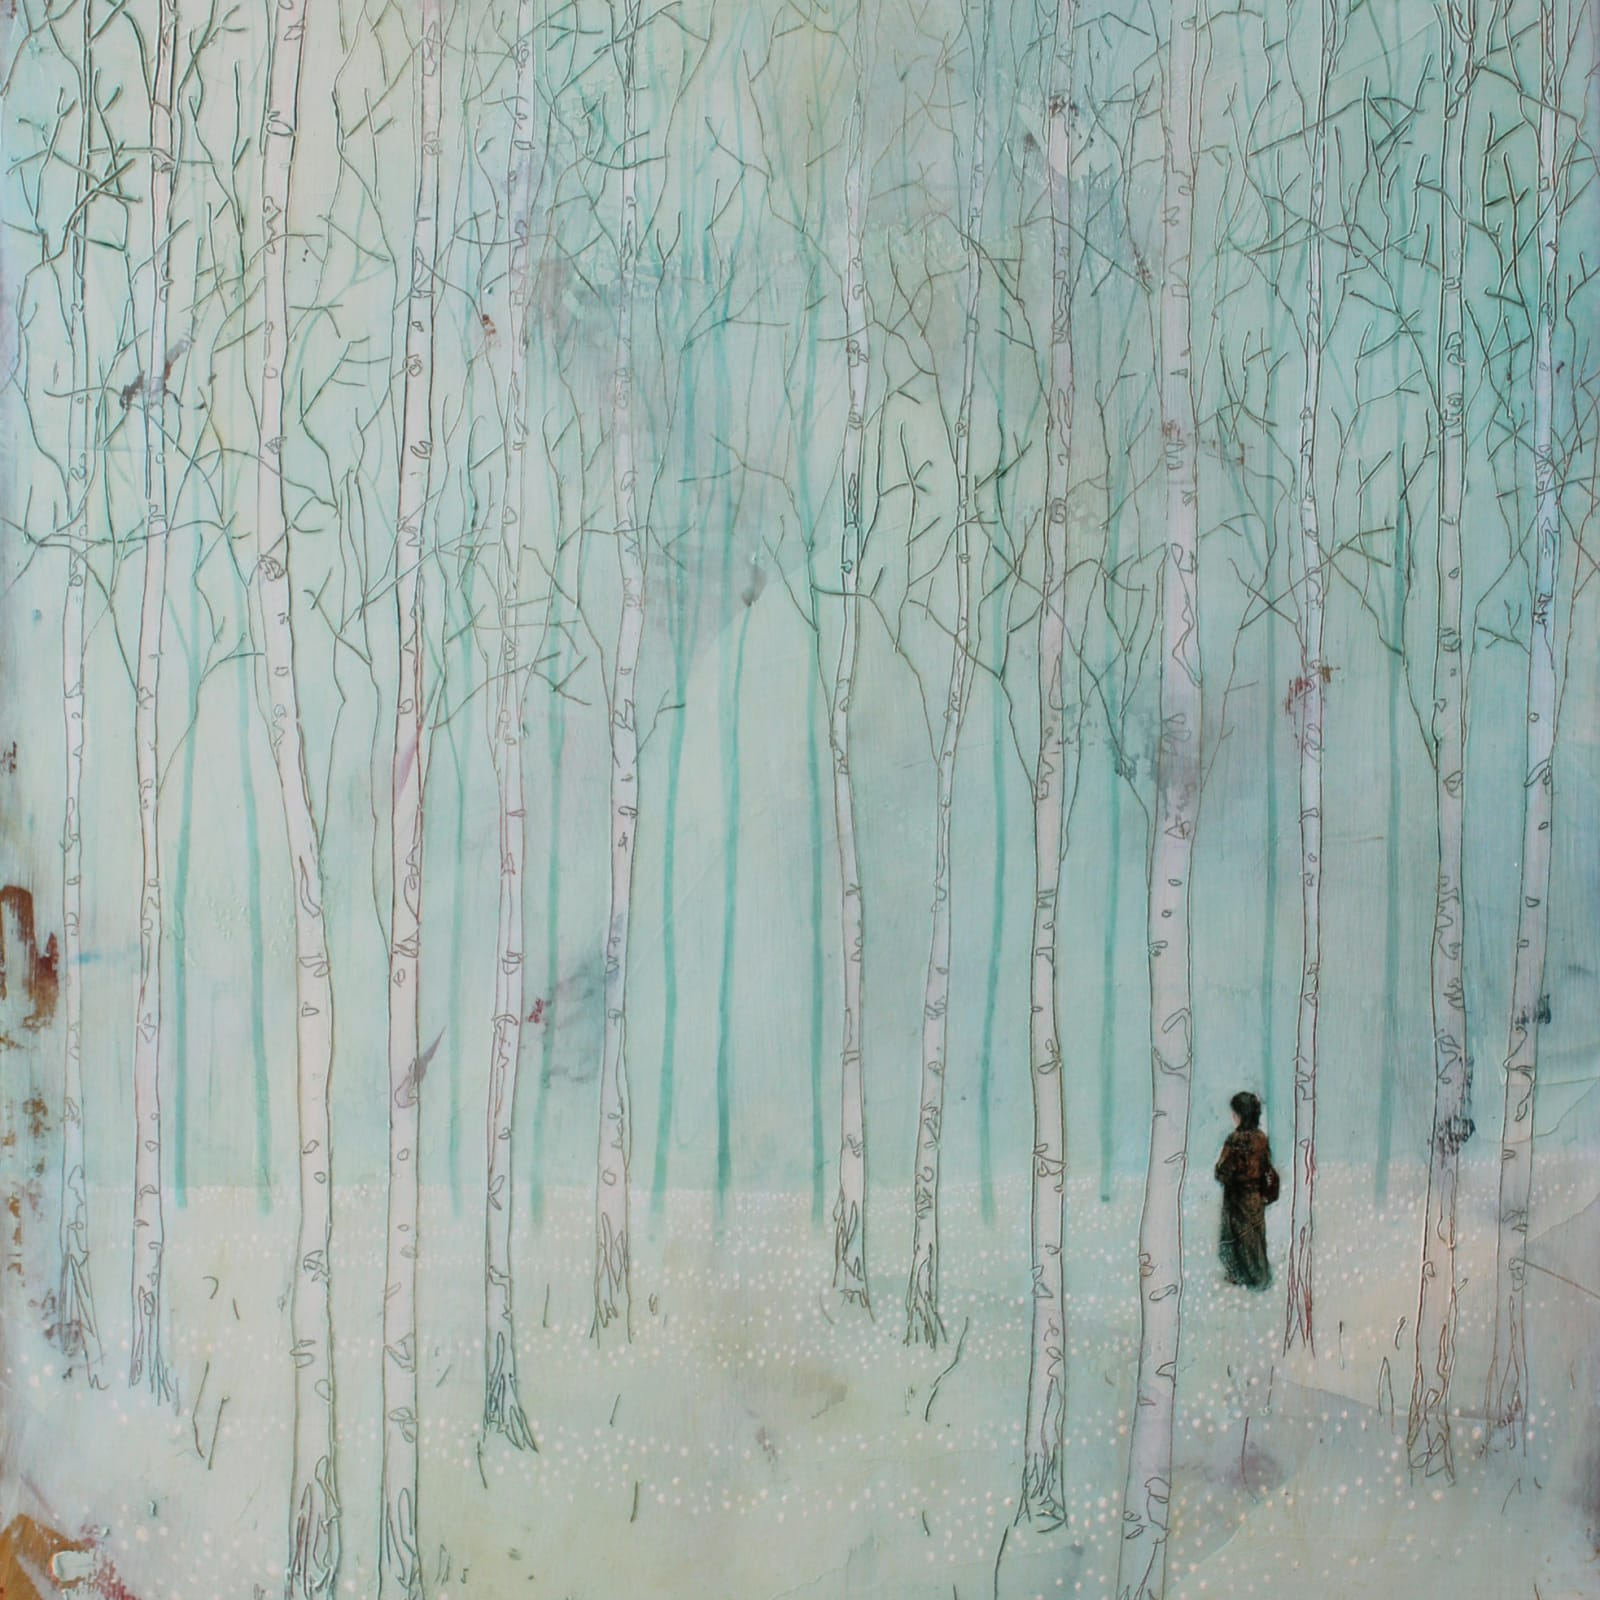 Daniel Ablitt, Journey (Quiet Woods)